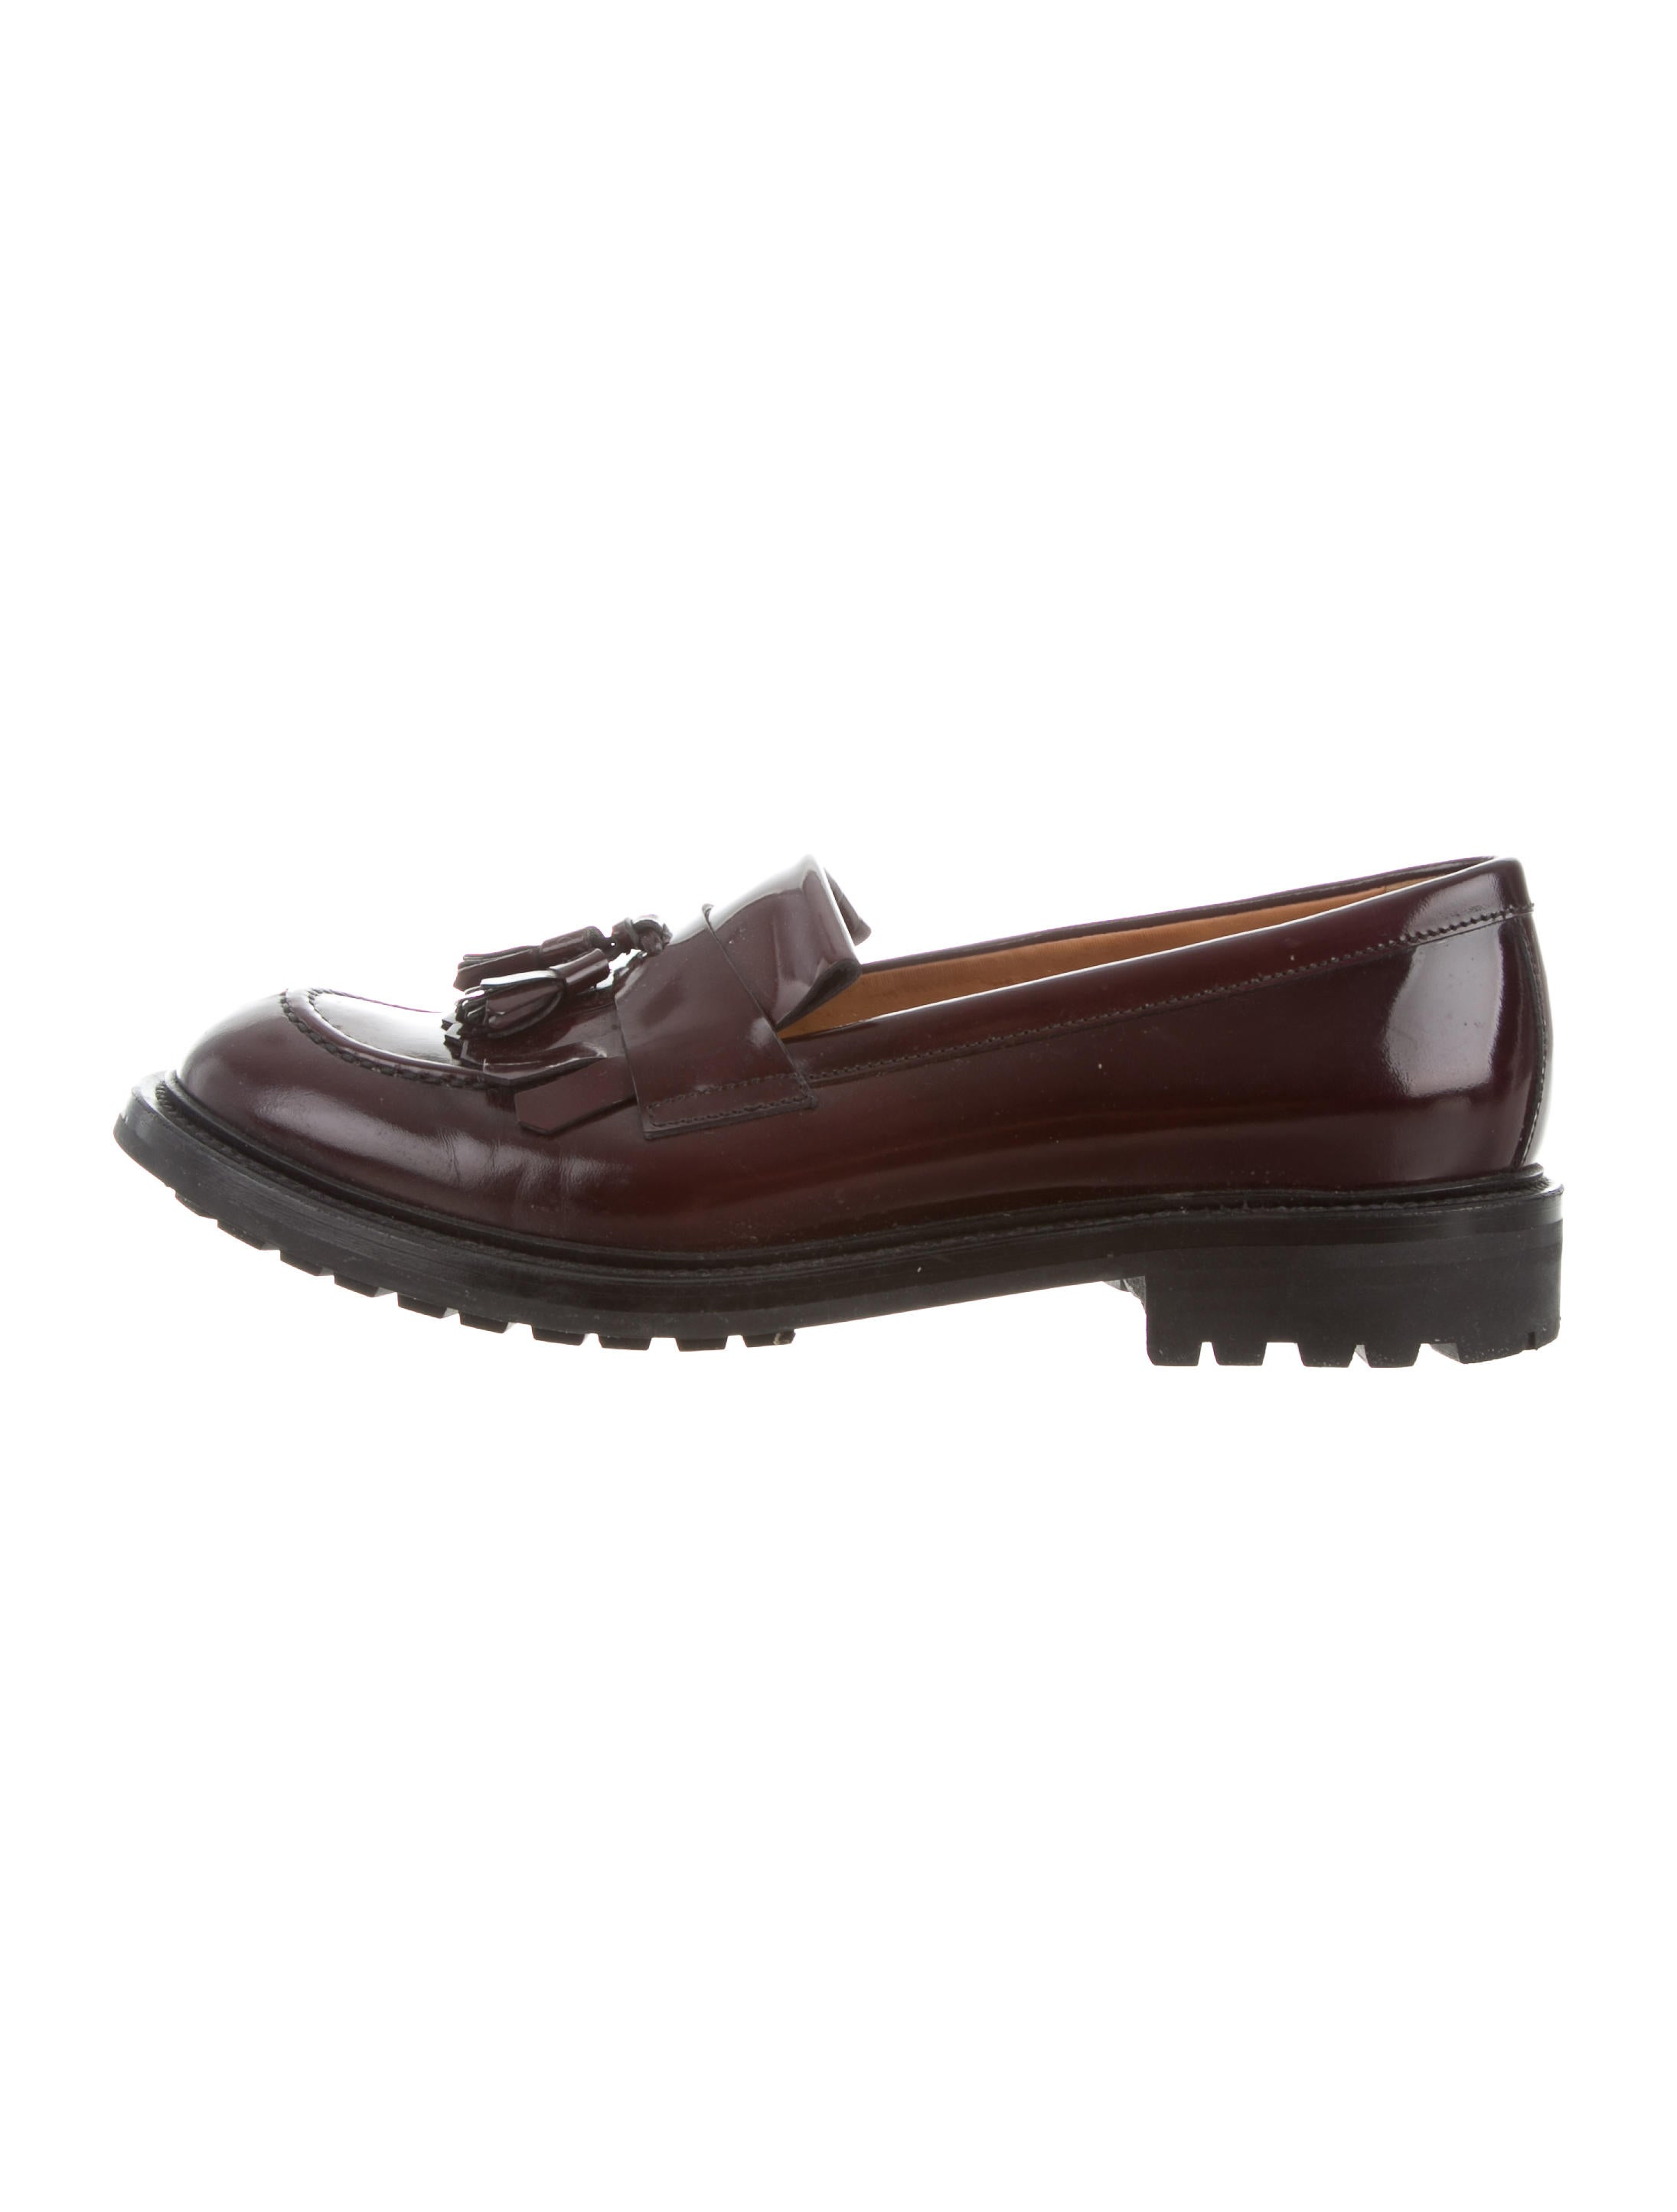 Church's Pansy Leather Loafers get authentic reliable cheap big discount visit new outlet enjoy L1HMSzdrO